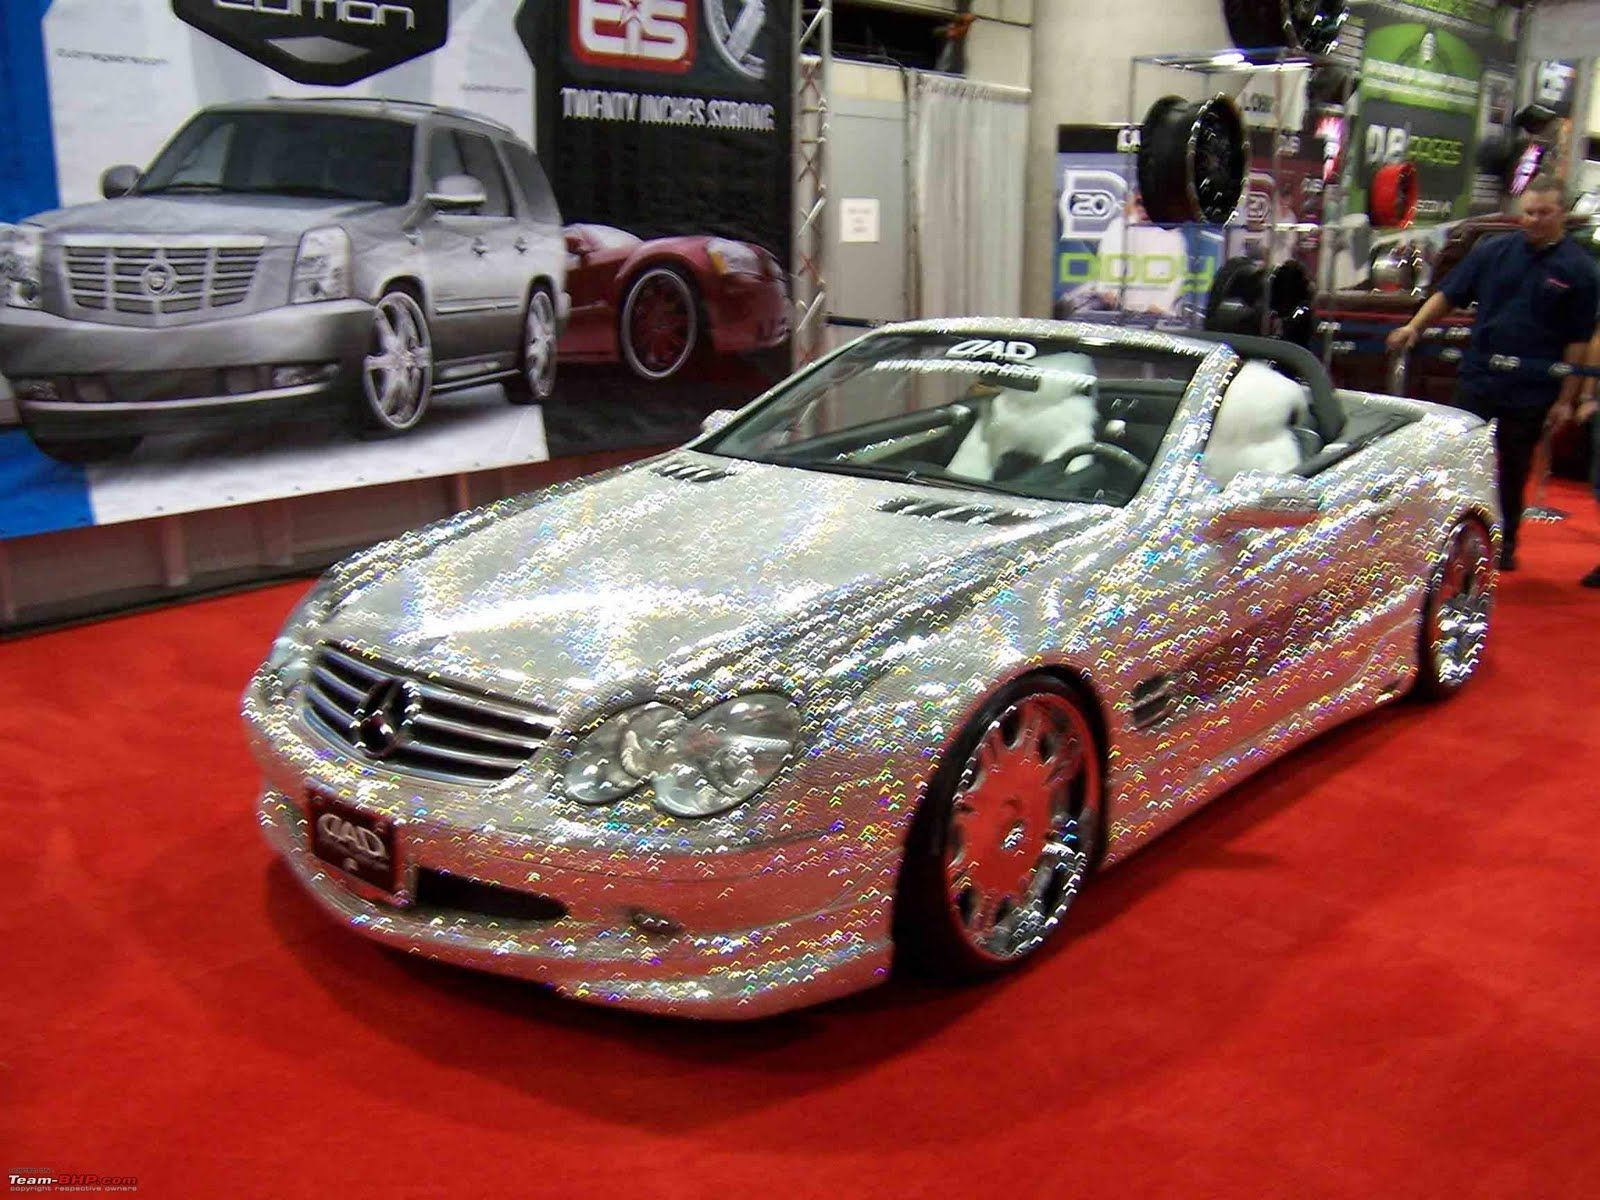 World S Most Expensive Car Mercedes With 300 000 Diamonds 4 8 Million Just To Touch It